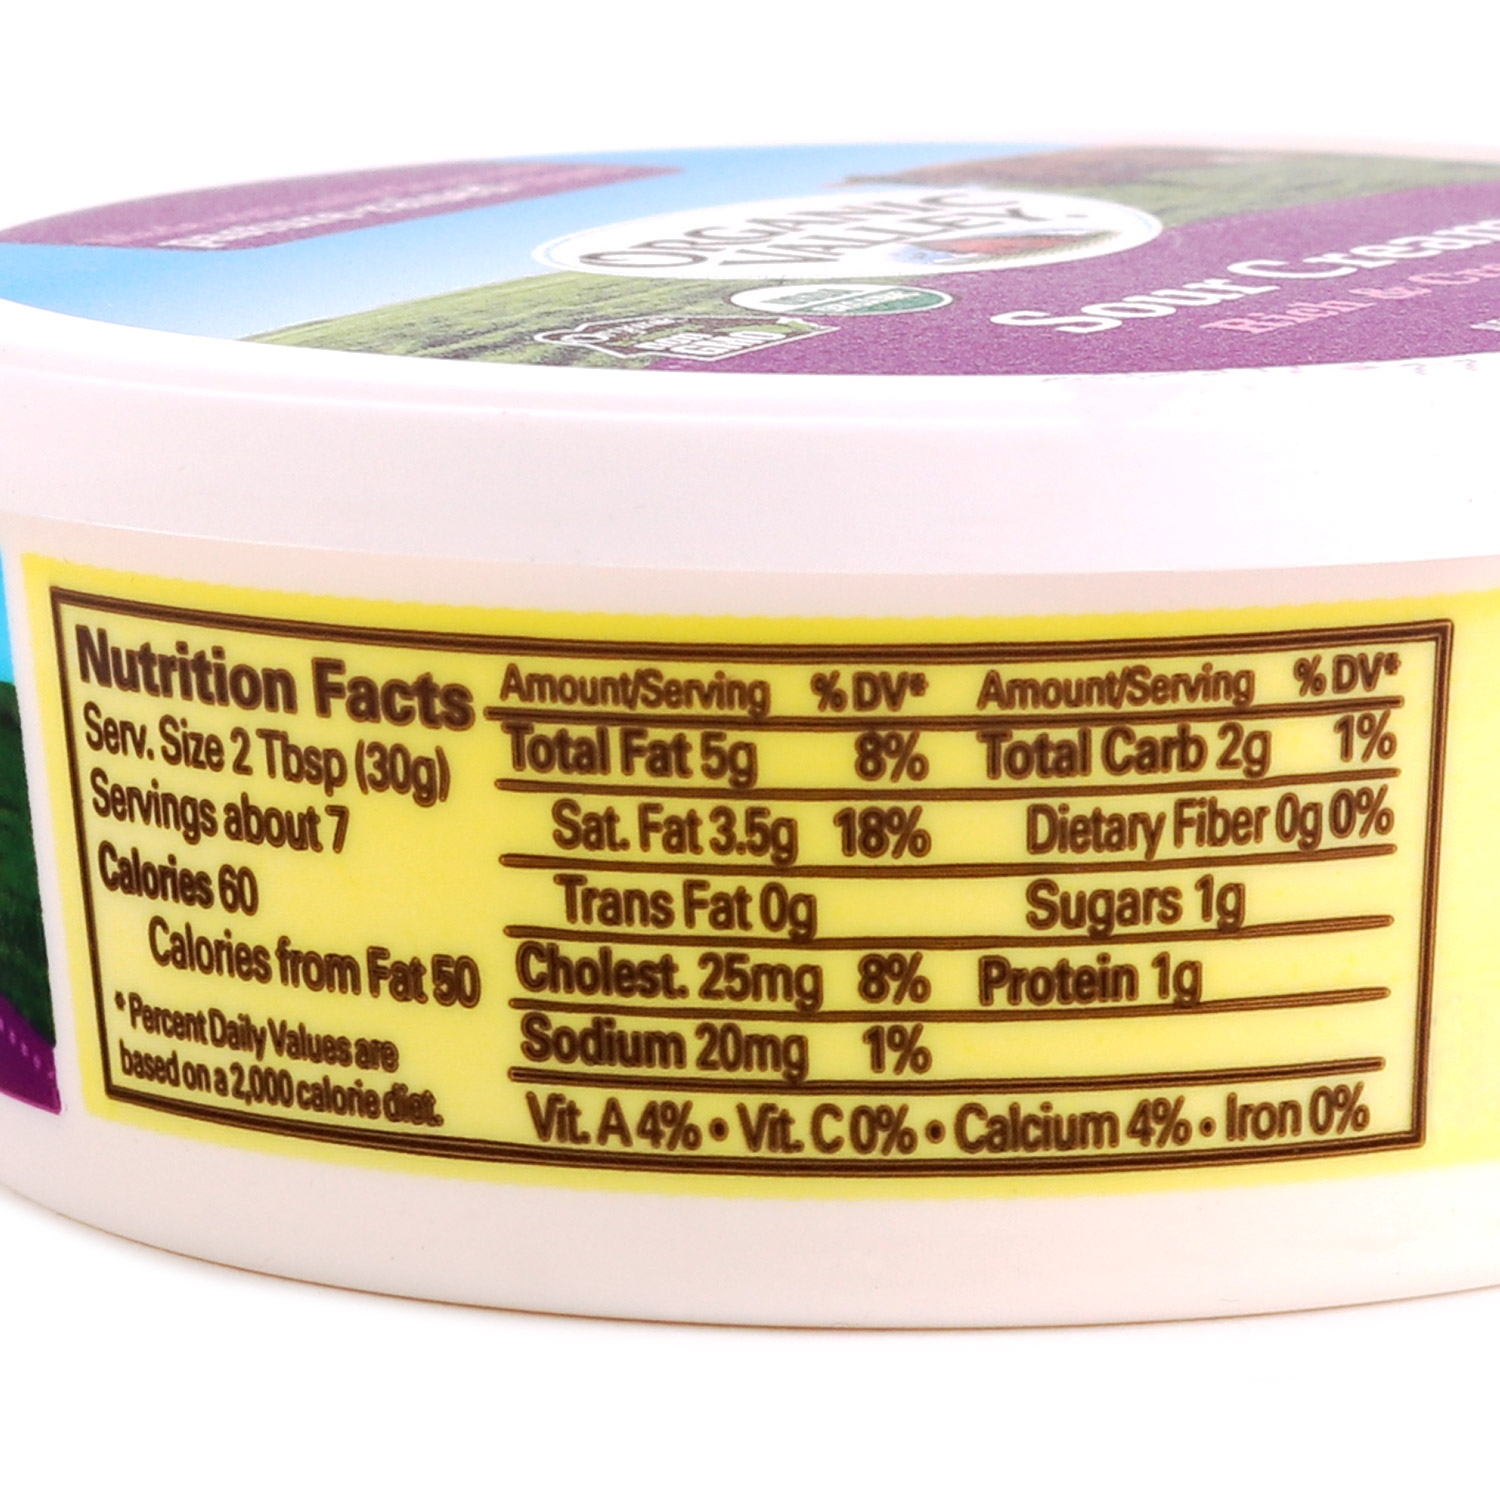 Tub, Sour Cream, 4% 8 oz-Organic